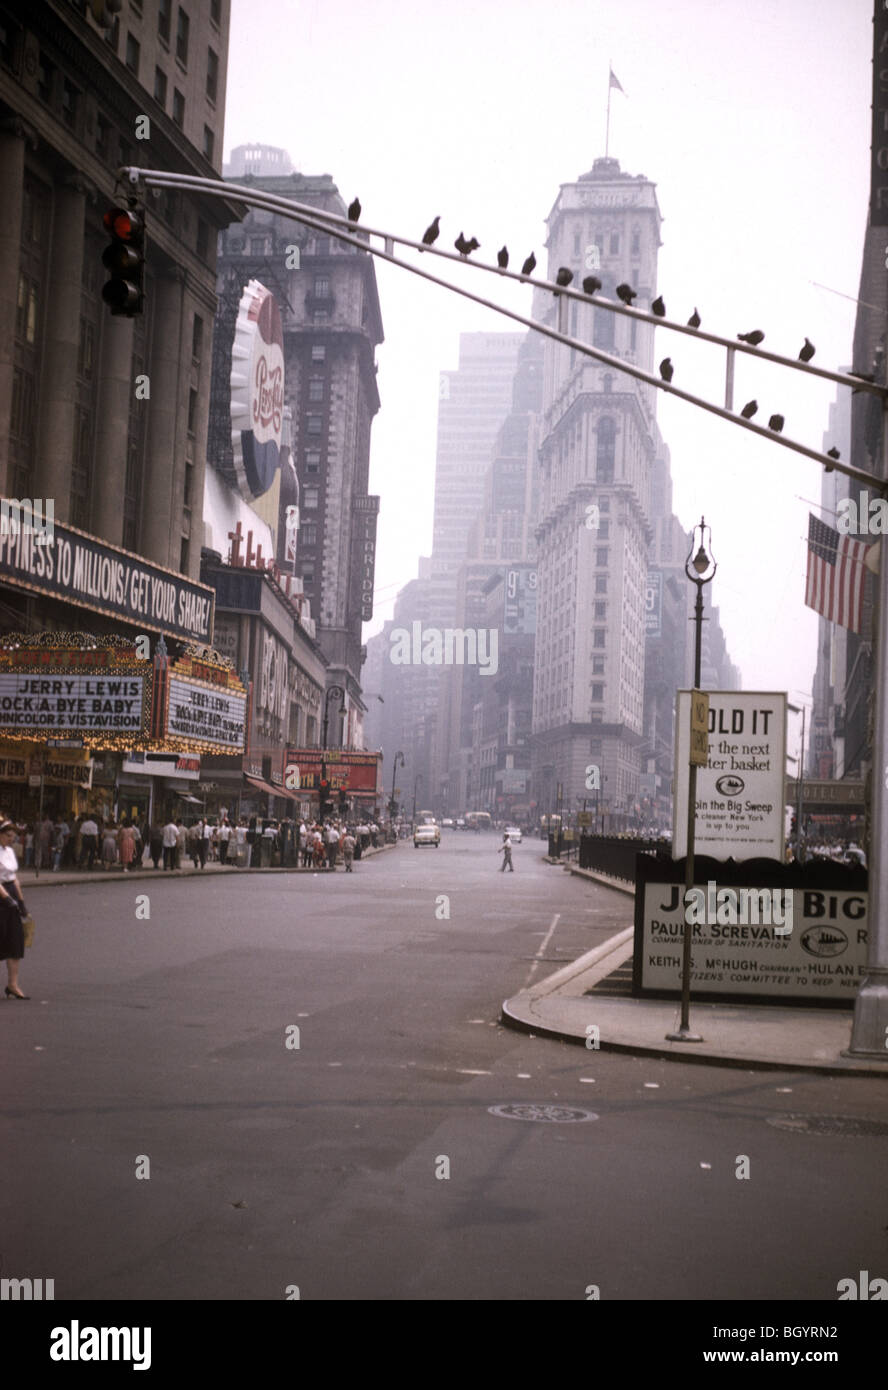 Times Square, where a Jerry Lewis film is playing and a crowd is lined up outside, is a view of New York City during - Stock Image